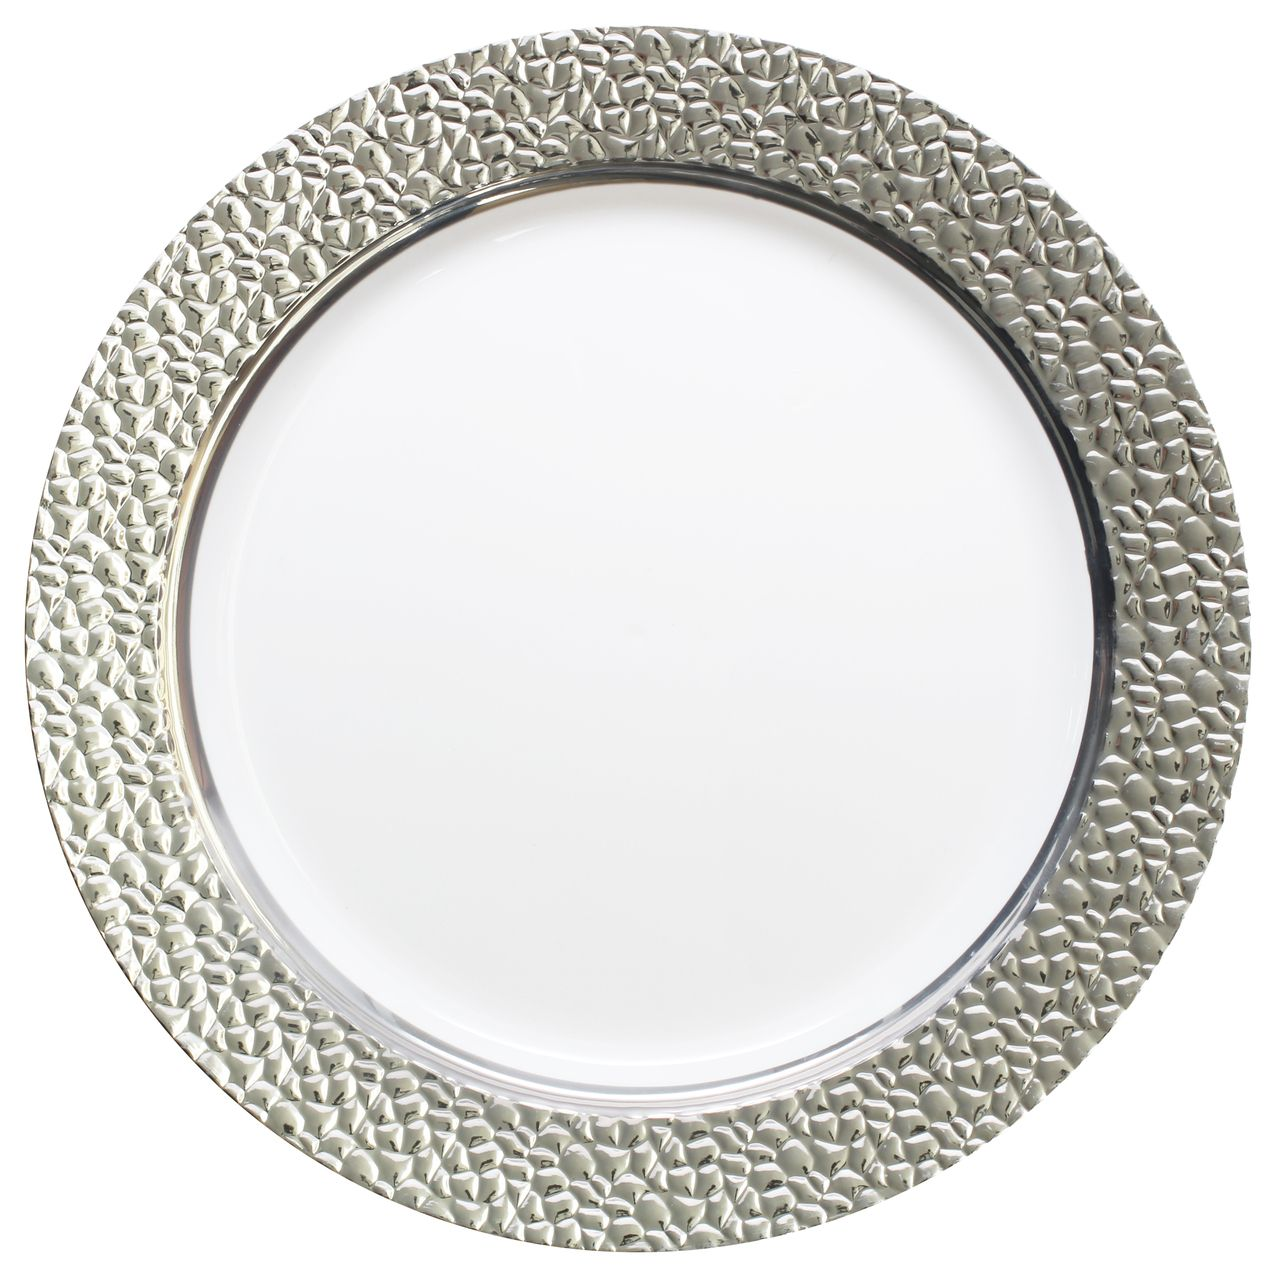 Posh Party Supplies - 10.25  Clear/Silver Hammered Plastic Dinner Plates $6.79 (  sc 1 st  Pinterest & 10.25